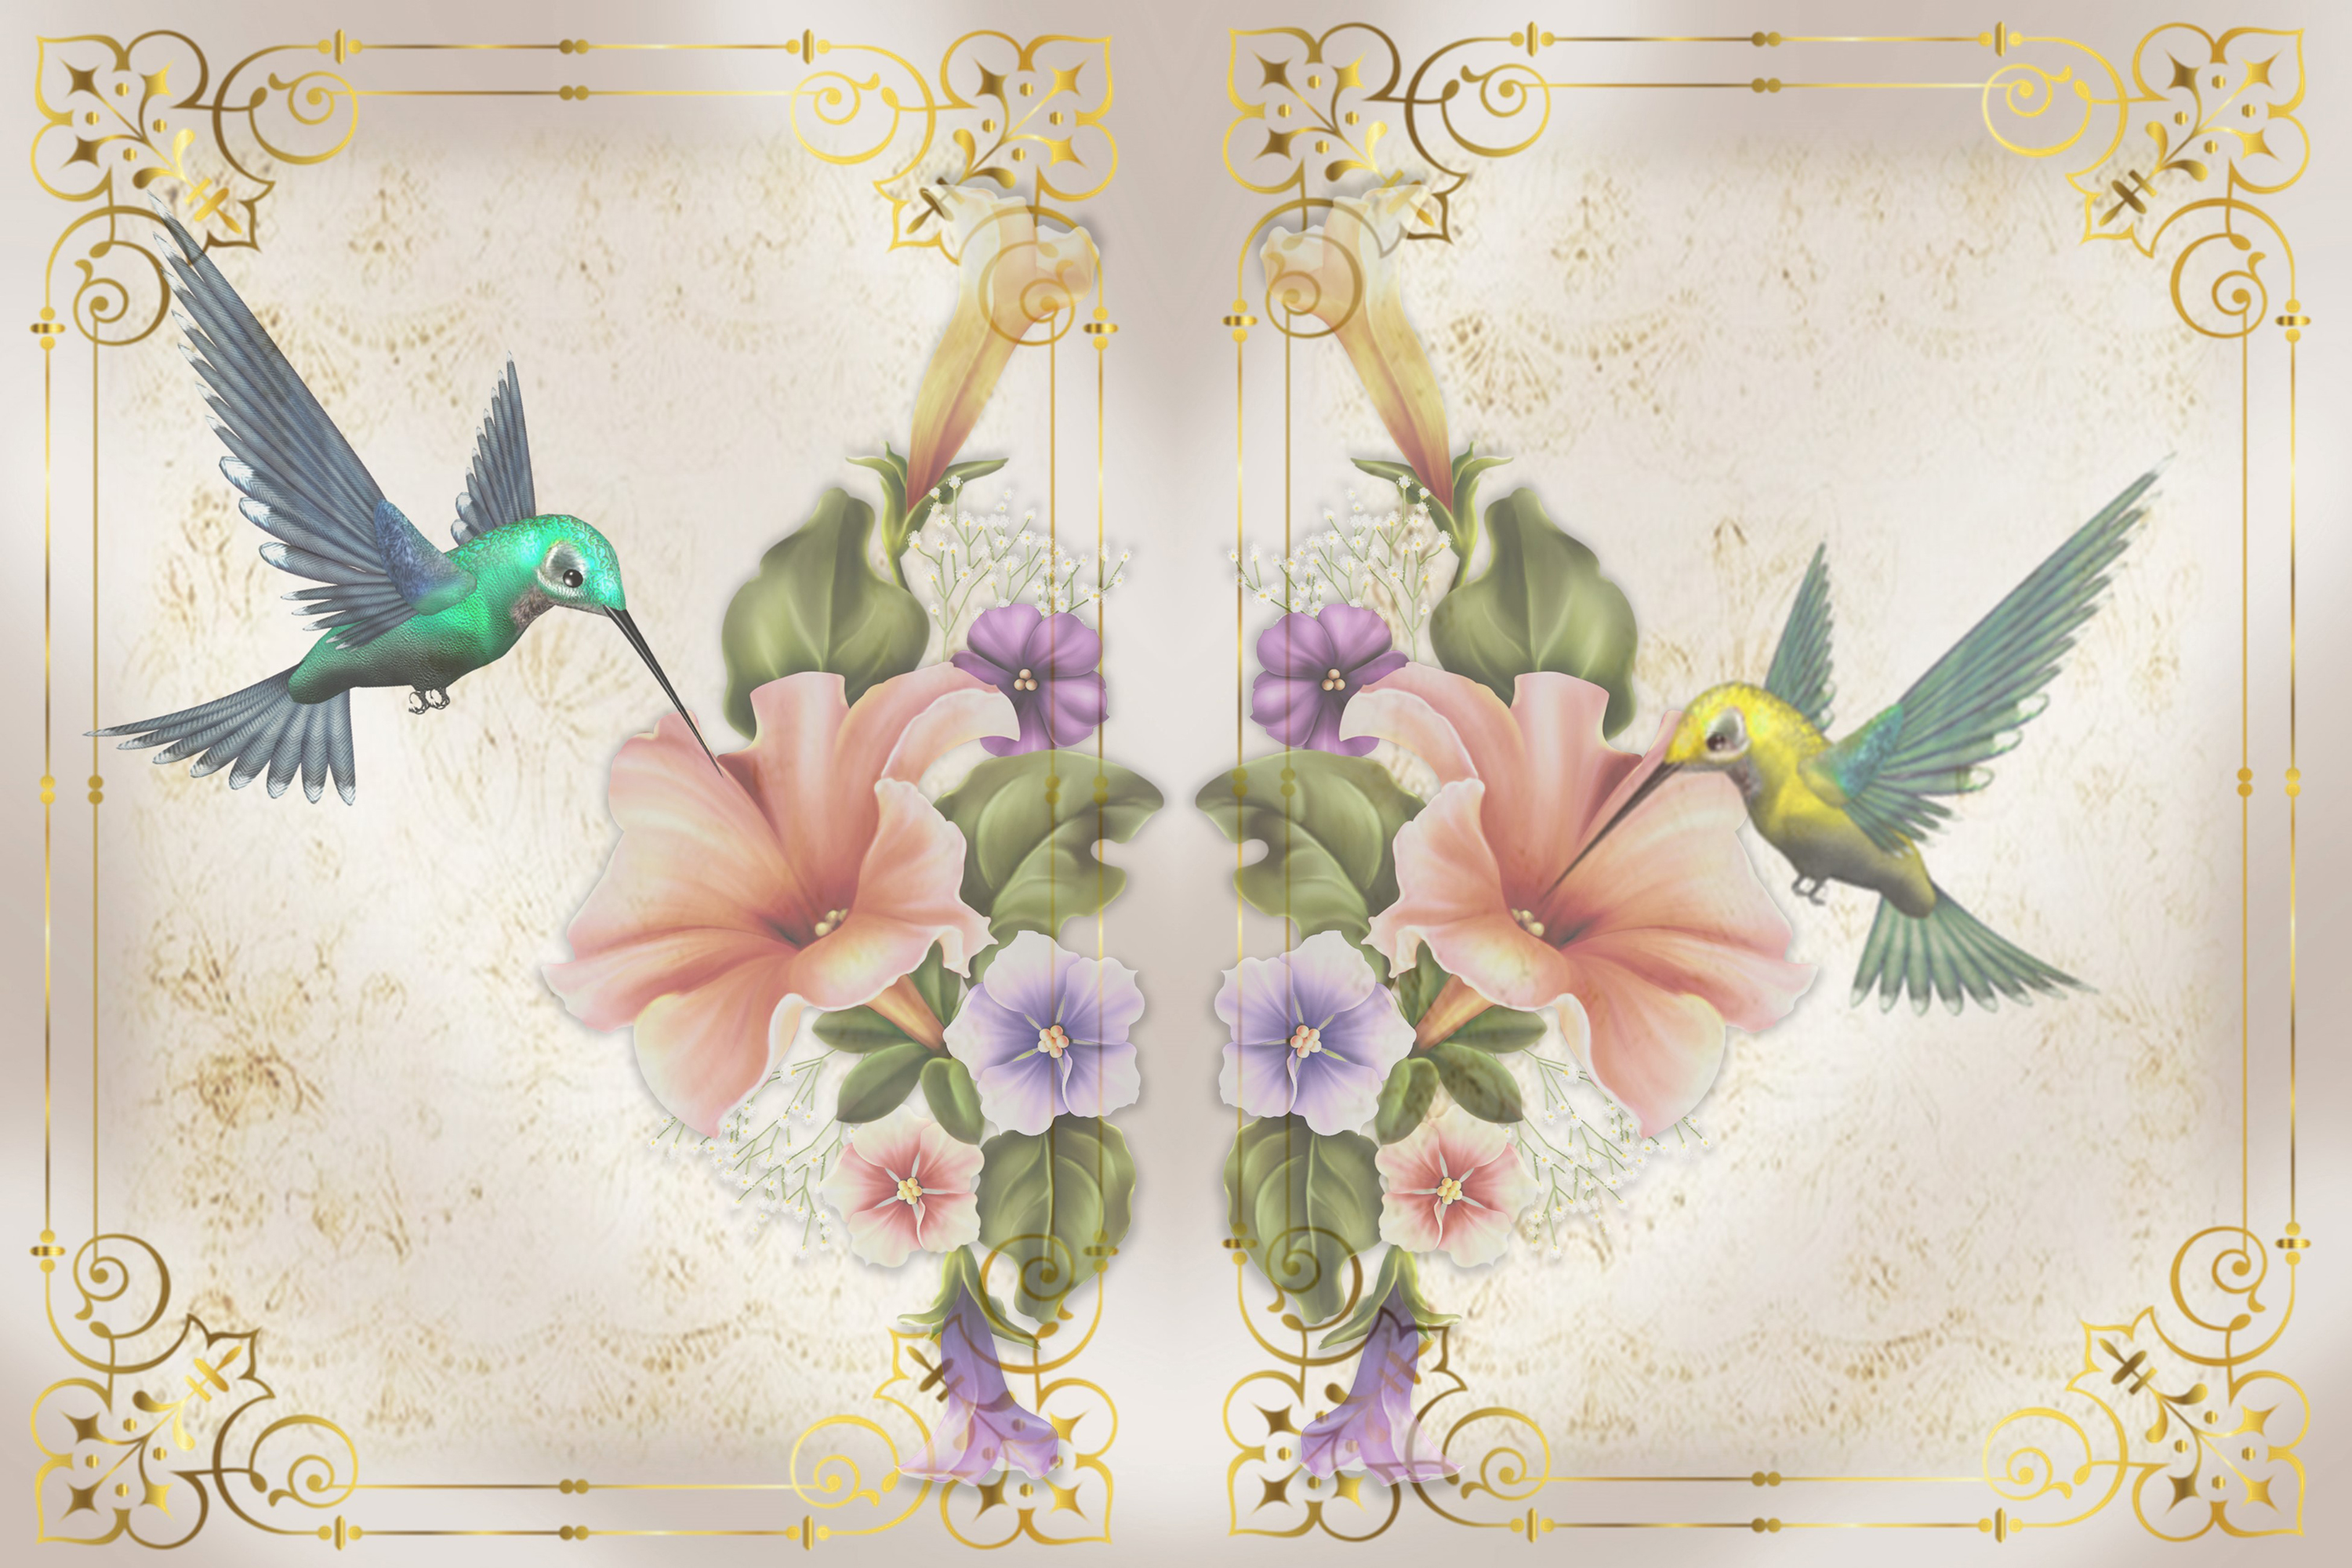 Hummingbird Journaling Kit Backgrounds Commercial Use example image 5